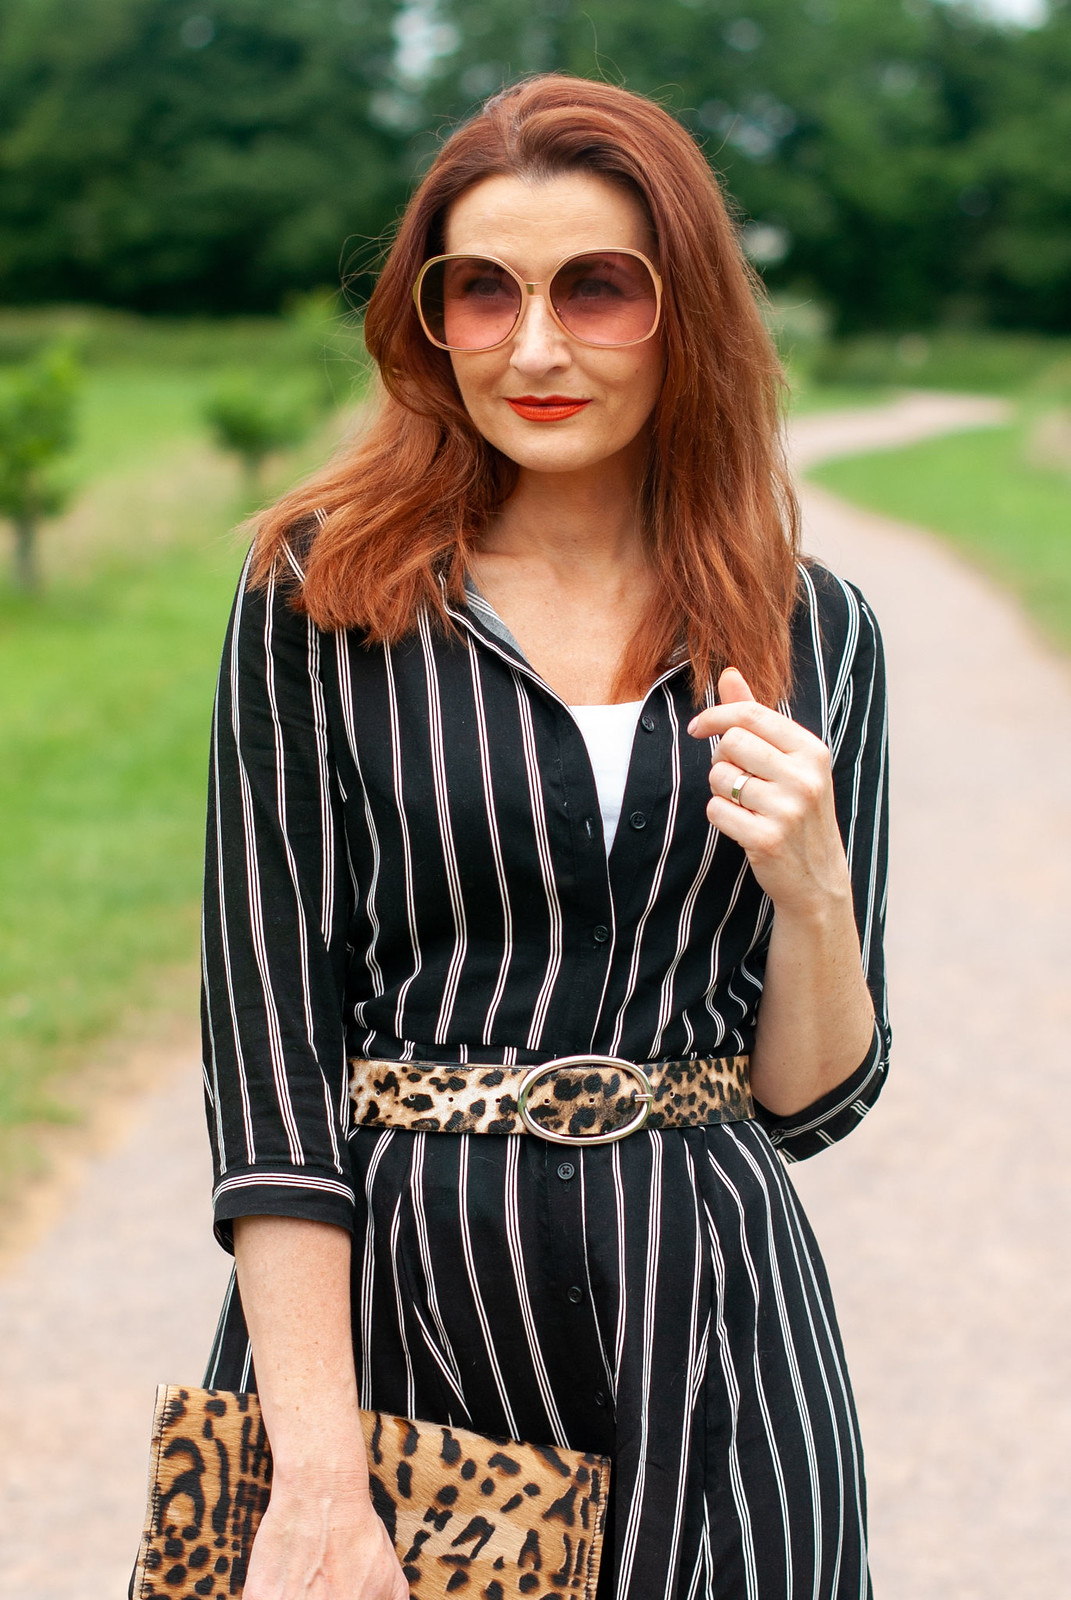 How to Style a Summer Shirt Dress With Pattern Mixing \ black and white striped midi shirt dress \ leopard clutch and belt \ red slingback block heel shoes | Not Dressed As Lamb, over 40 style